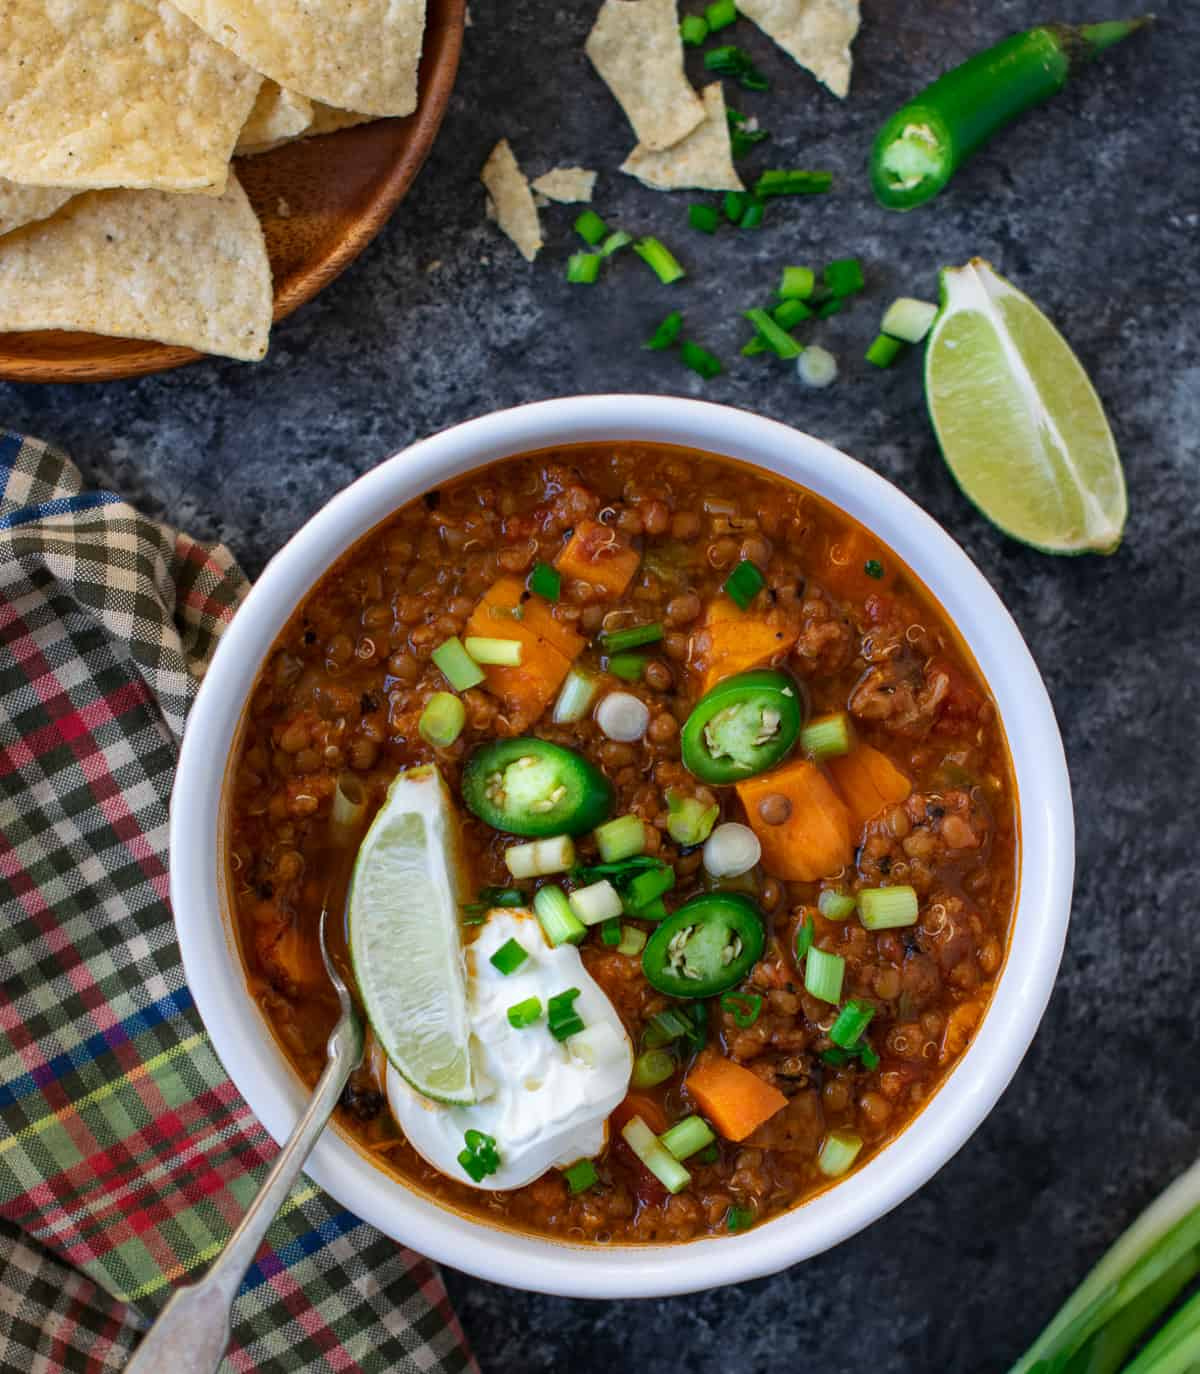 Sweet Potato quinoa lentil chili served with sour cream and lemon on the top